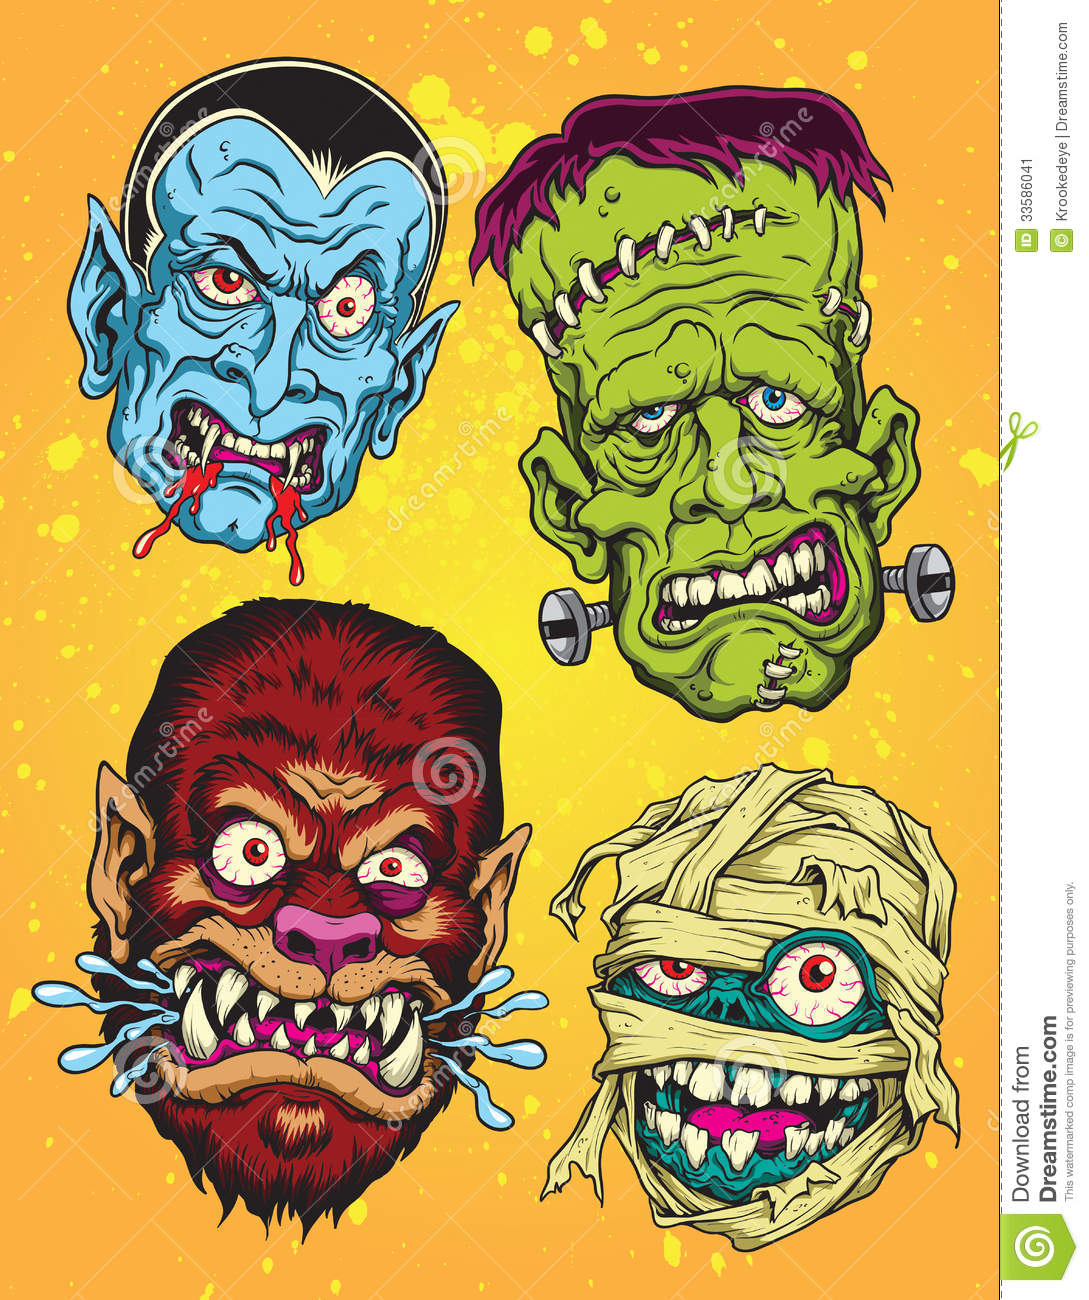 Halloween Monster Heads Stock Image - Image: 33586041